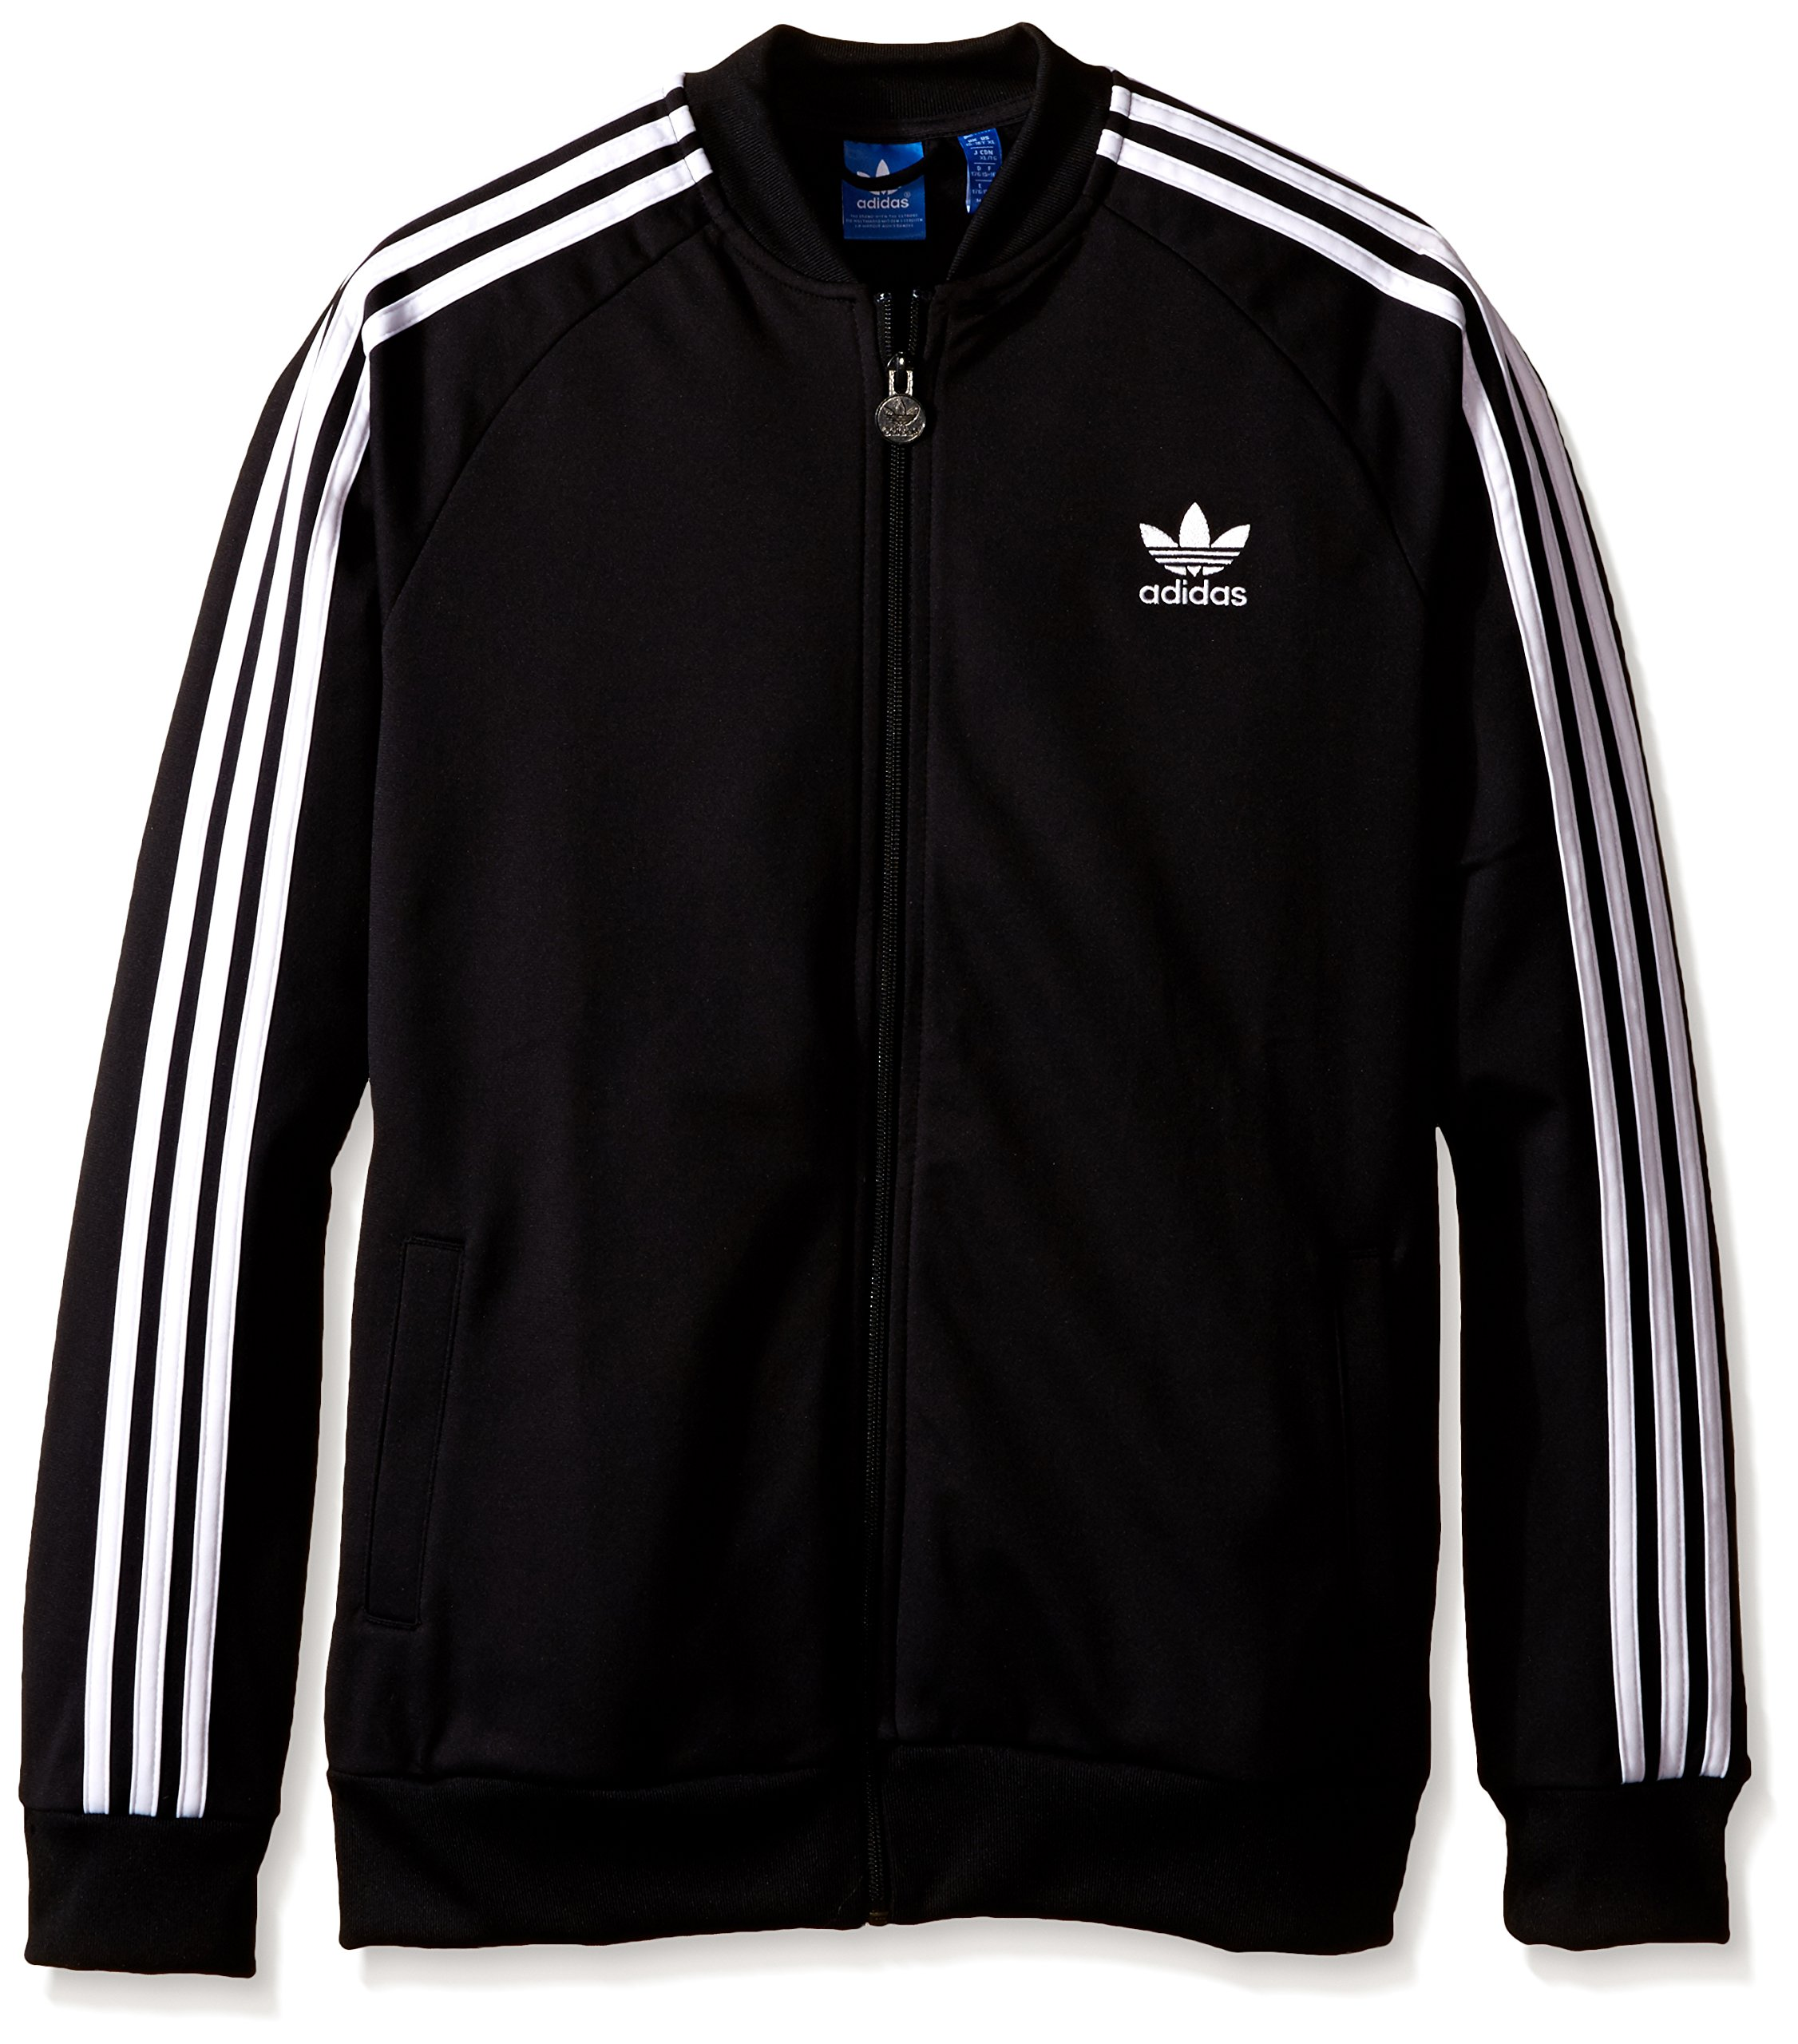 adidas Originals Boys' Superstar Track Top, Black, X-Small by adidas Originals